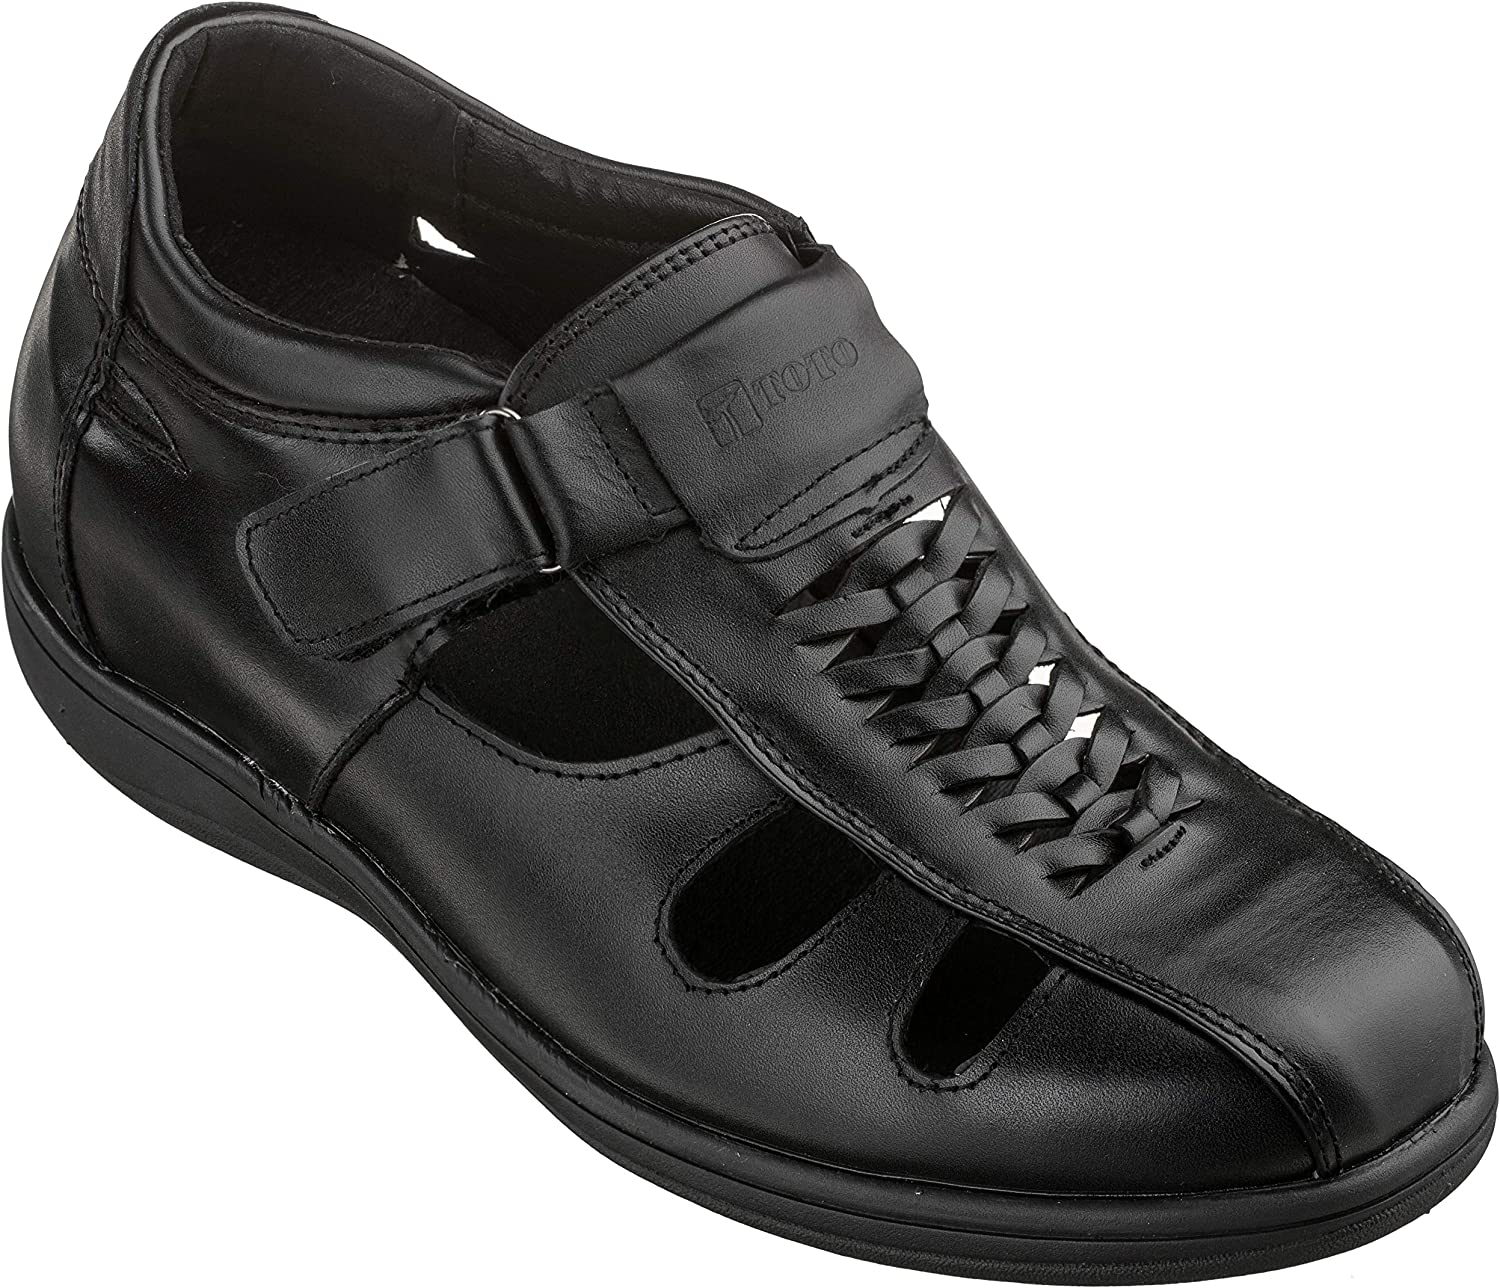 TOTO Men's Invisible Height Increasing Shoes Ranking TOP20 Elevator Leather Trust -